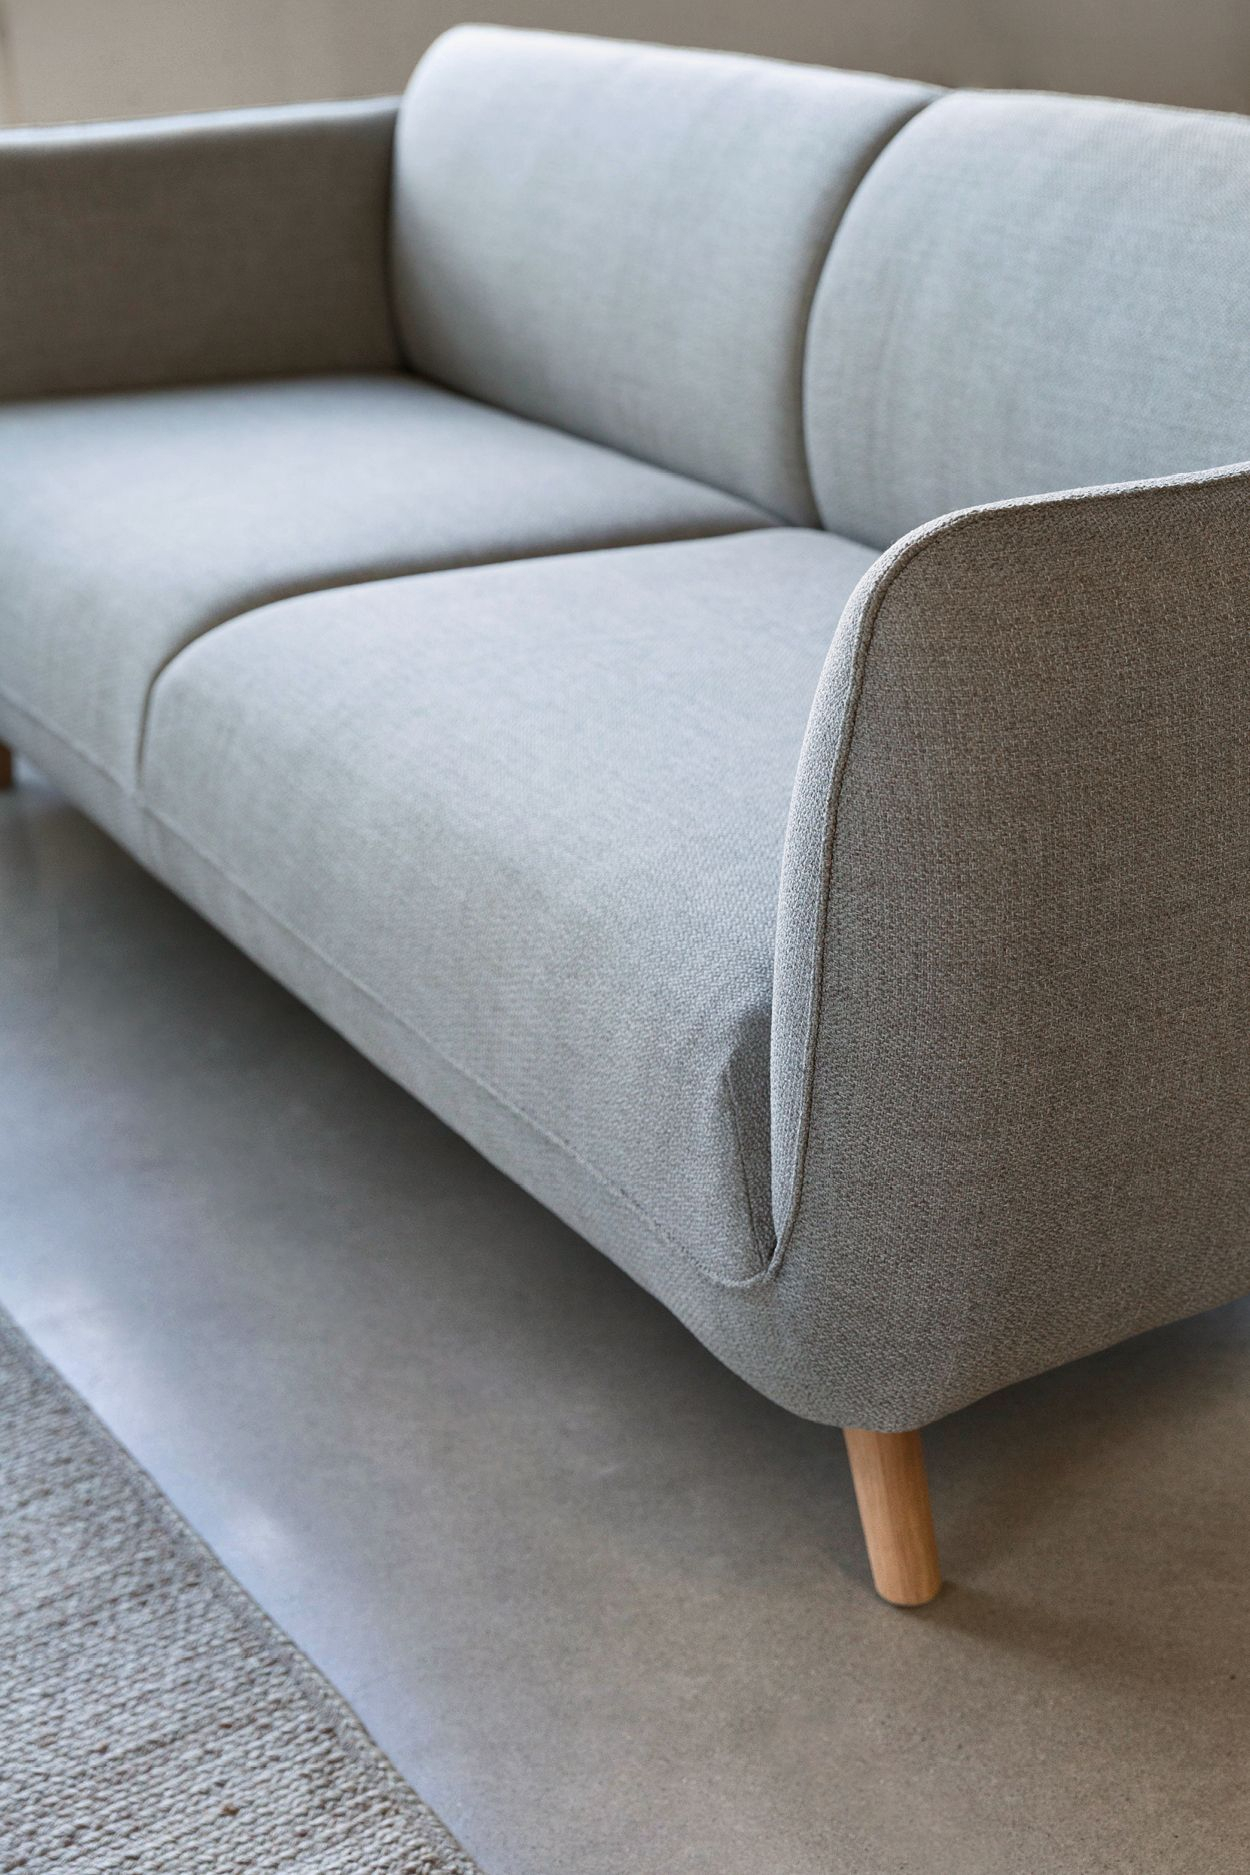 Gray Fabric Sofa, 3 Seat, Solid Wood Legs | Article Haro Modern Throughout Grace Sofa Chairs (Photo 20 of 25)